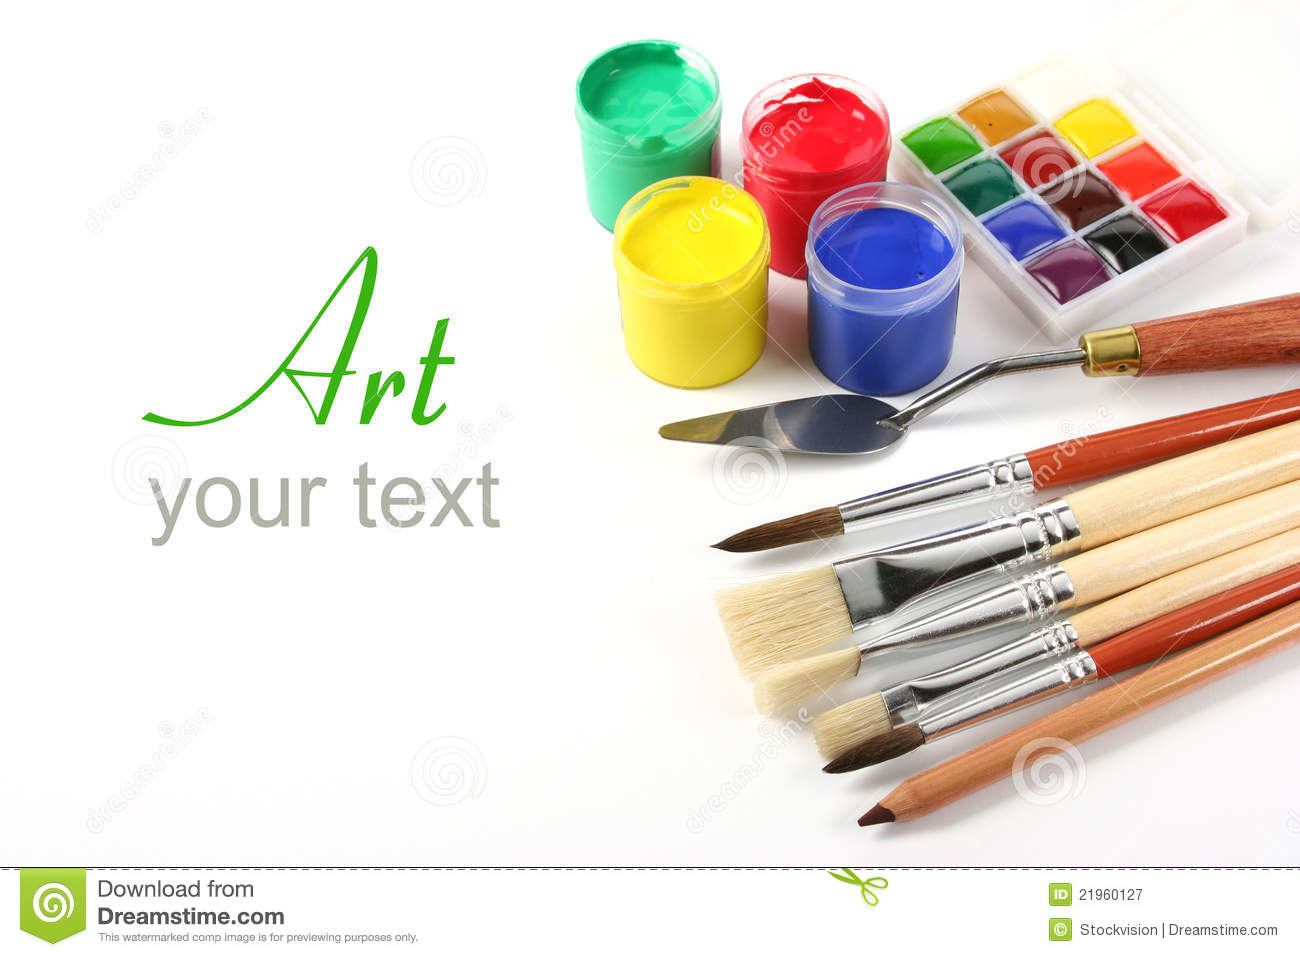 Paint Materials Clipart - Clipart Suggest